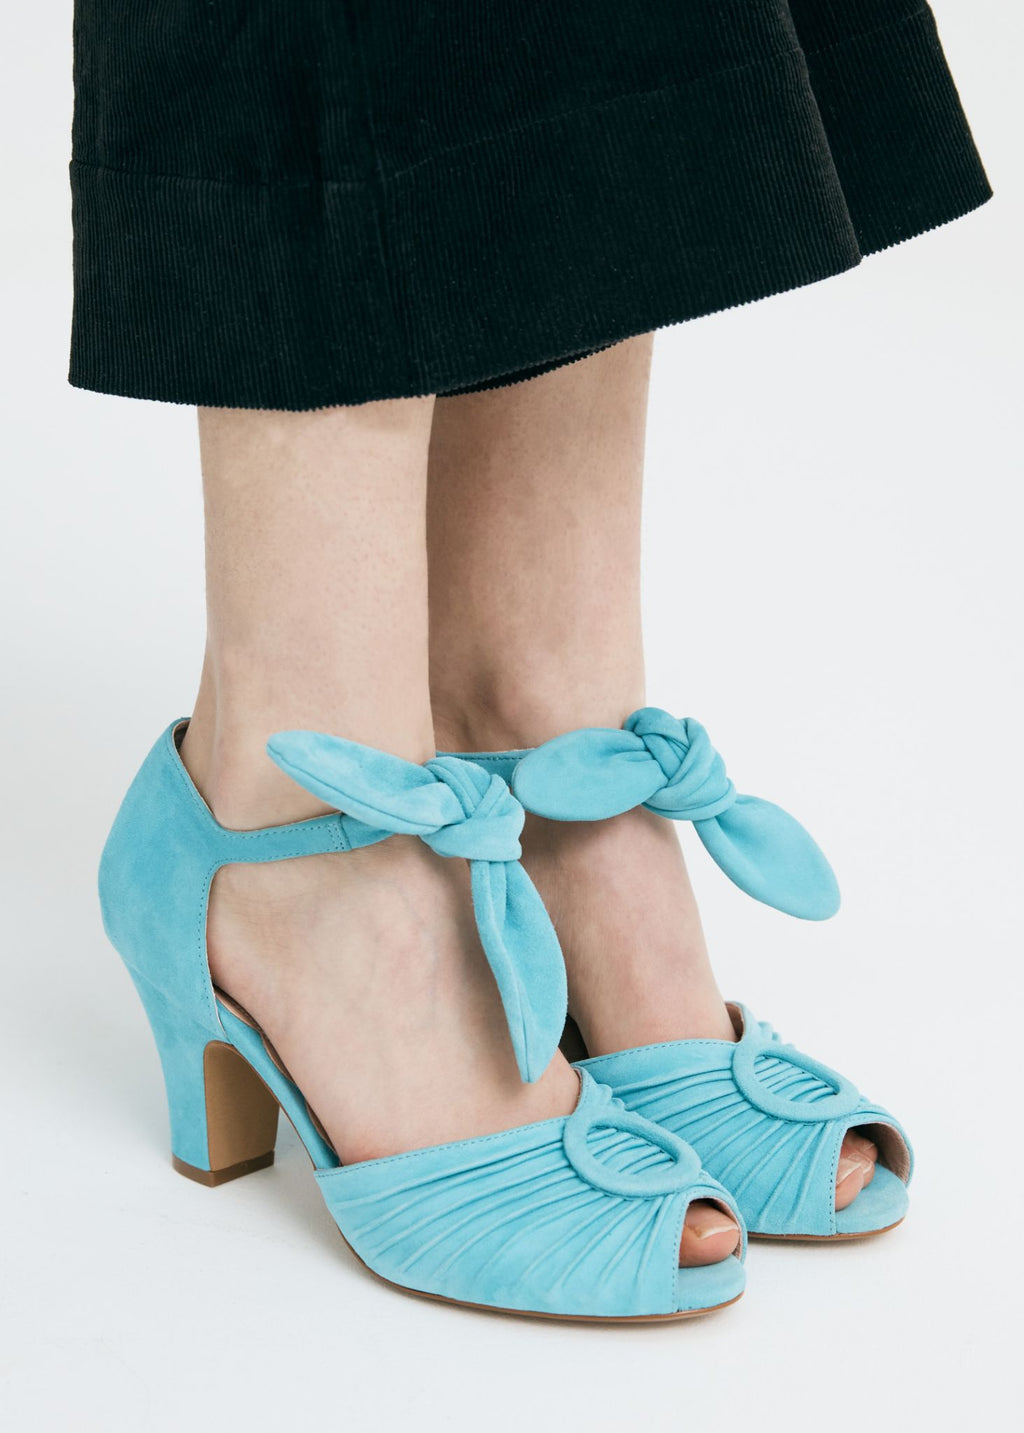 Loretta in soft turquoise blue suede by Miss L Fire is a vintage inspired peep toe sandal with 8cm heel and soft ankle tie straps. Vamp features delicate pleating and covered buckle detail.